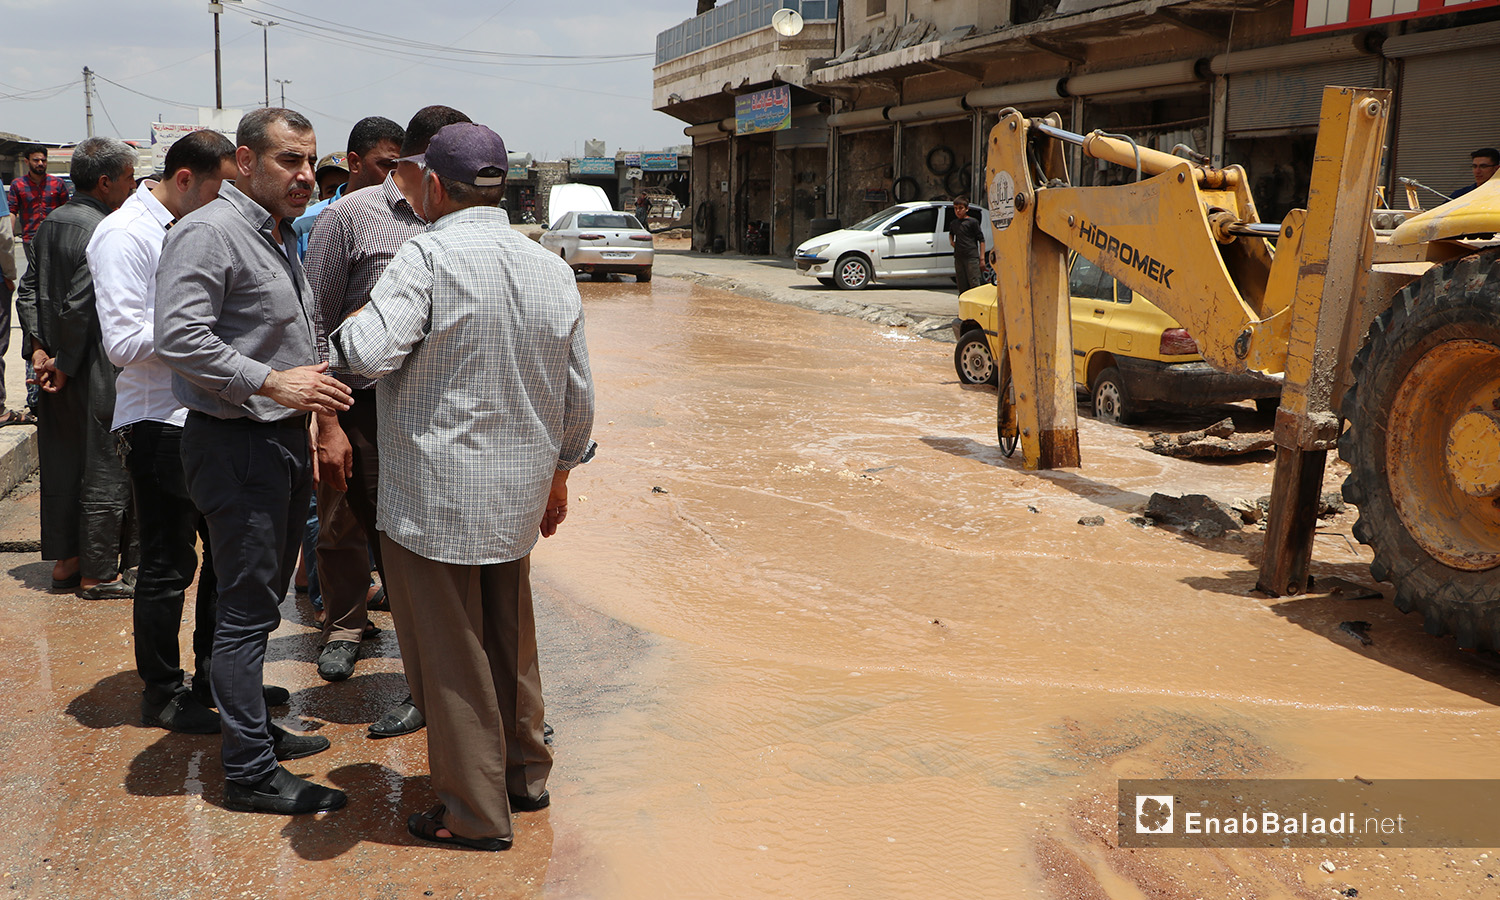 Workers performing the maintenance work for the water pipes system in al-Bab city in northern Aleppo countryside – 20 June 2020 (Enab Baladi / Asim Melhem)